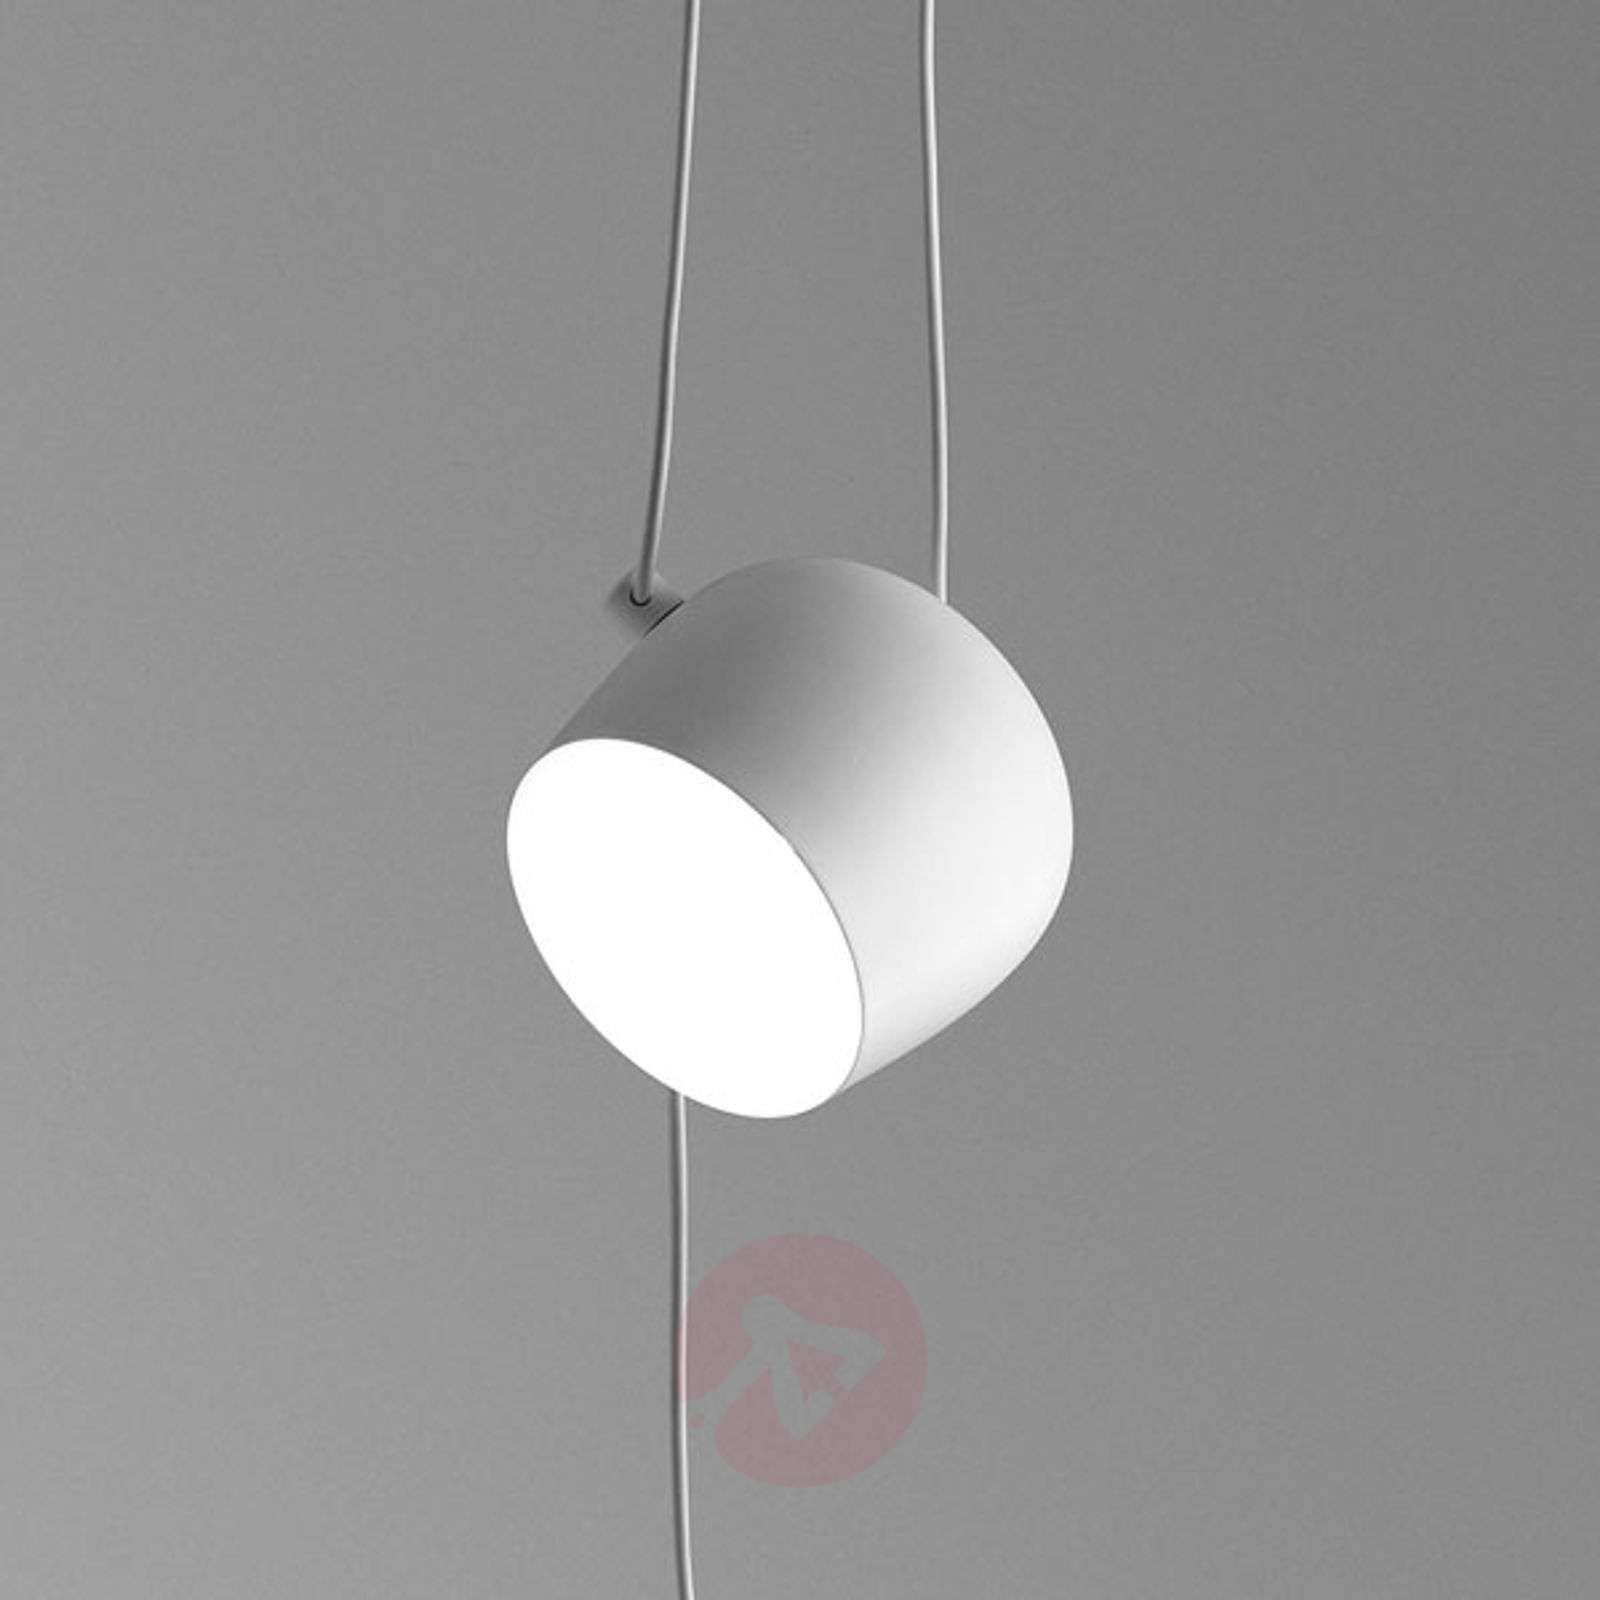 Met dimmer hanglamp Aim Small switch EUR wit-3510324-01